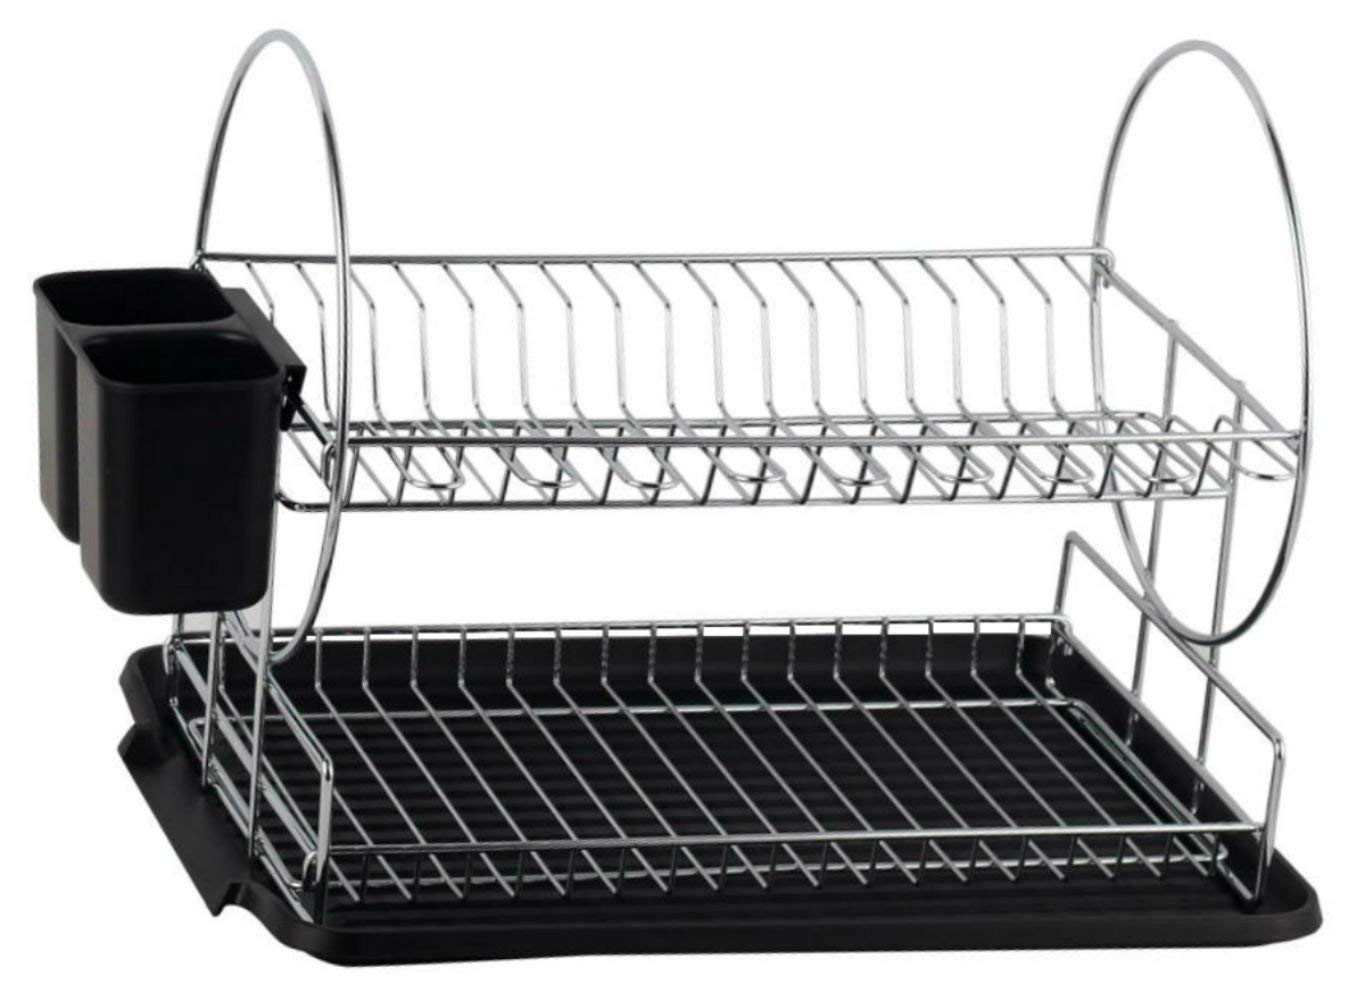 ???deluxe chrome-plated steel 2-tier dish rack with drainboard